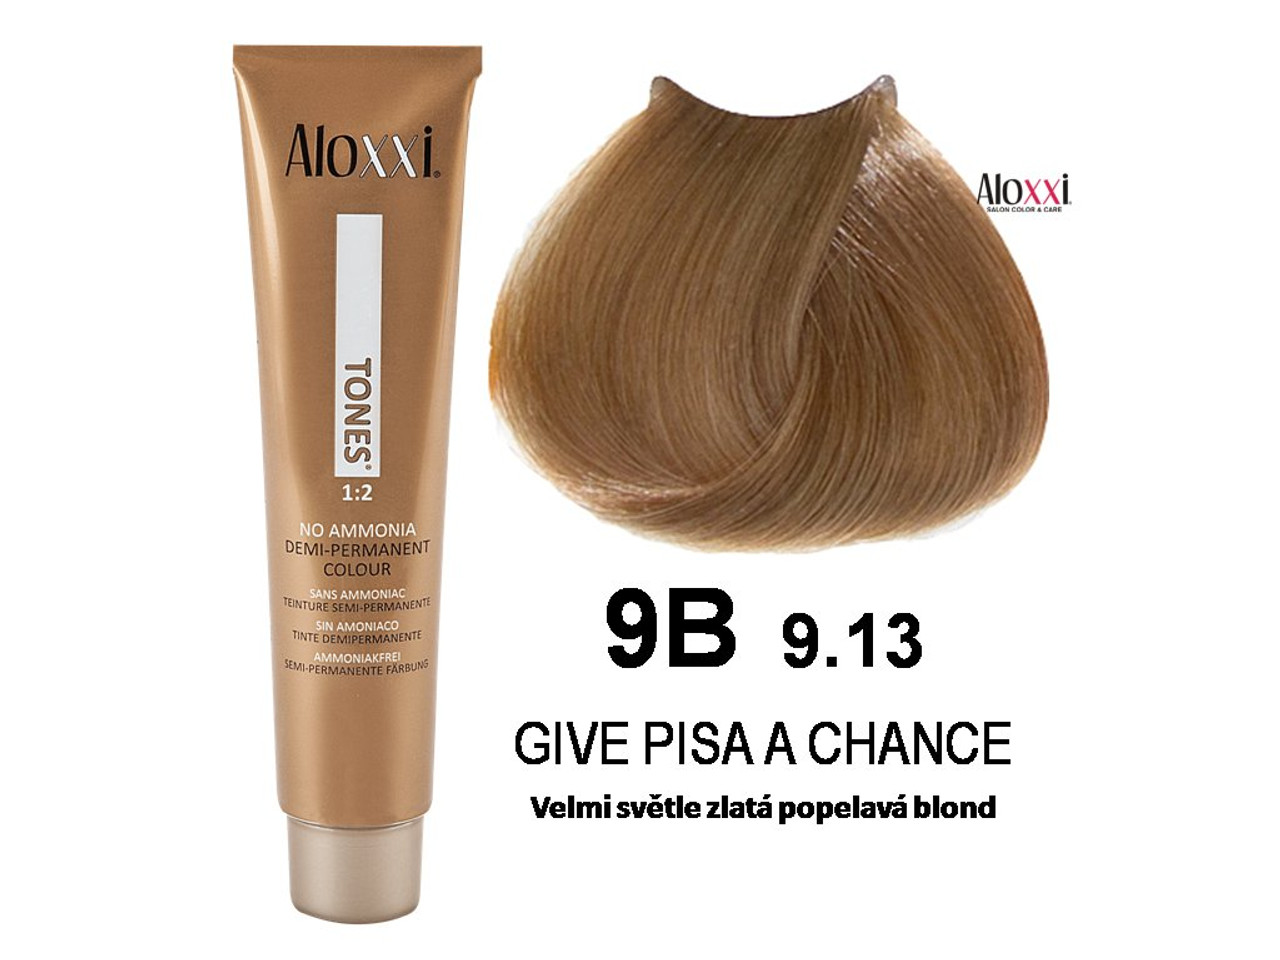 Aloxxi 9B, tube and hair color: Give Pisa a Chance